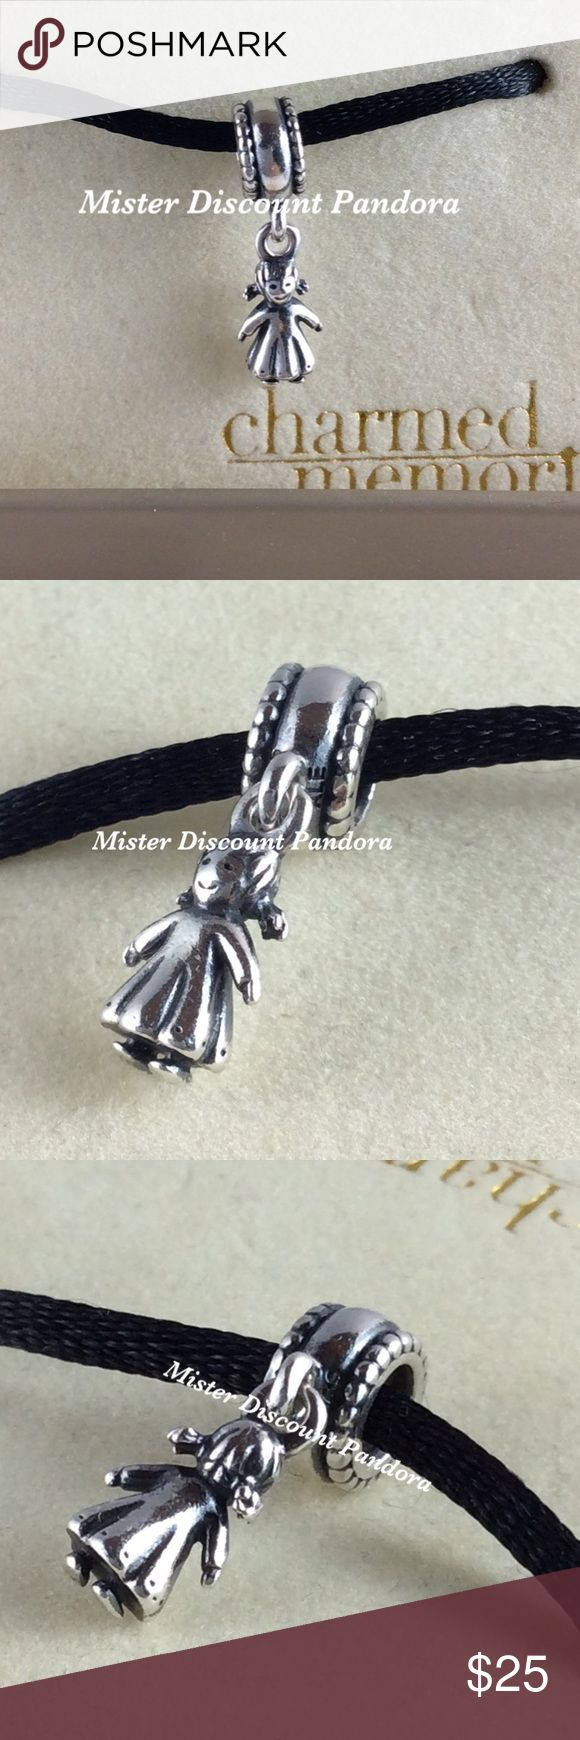 Pandora Retired My Little Girl Charm Authentic Pandora Retired My Little Girl Charm #790860.  Condition: Excellent used condition. Signature markings Ale/925.  🔹3 Available for sale Pandora Jewelry Bracelets